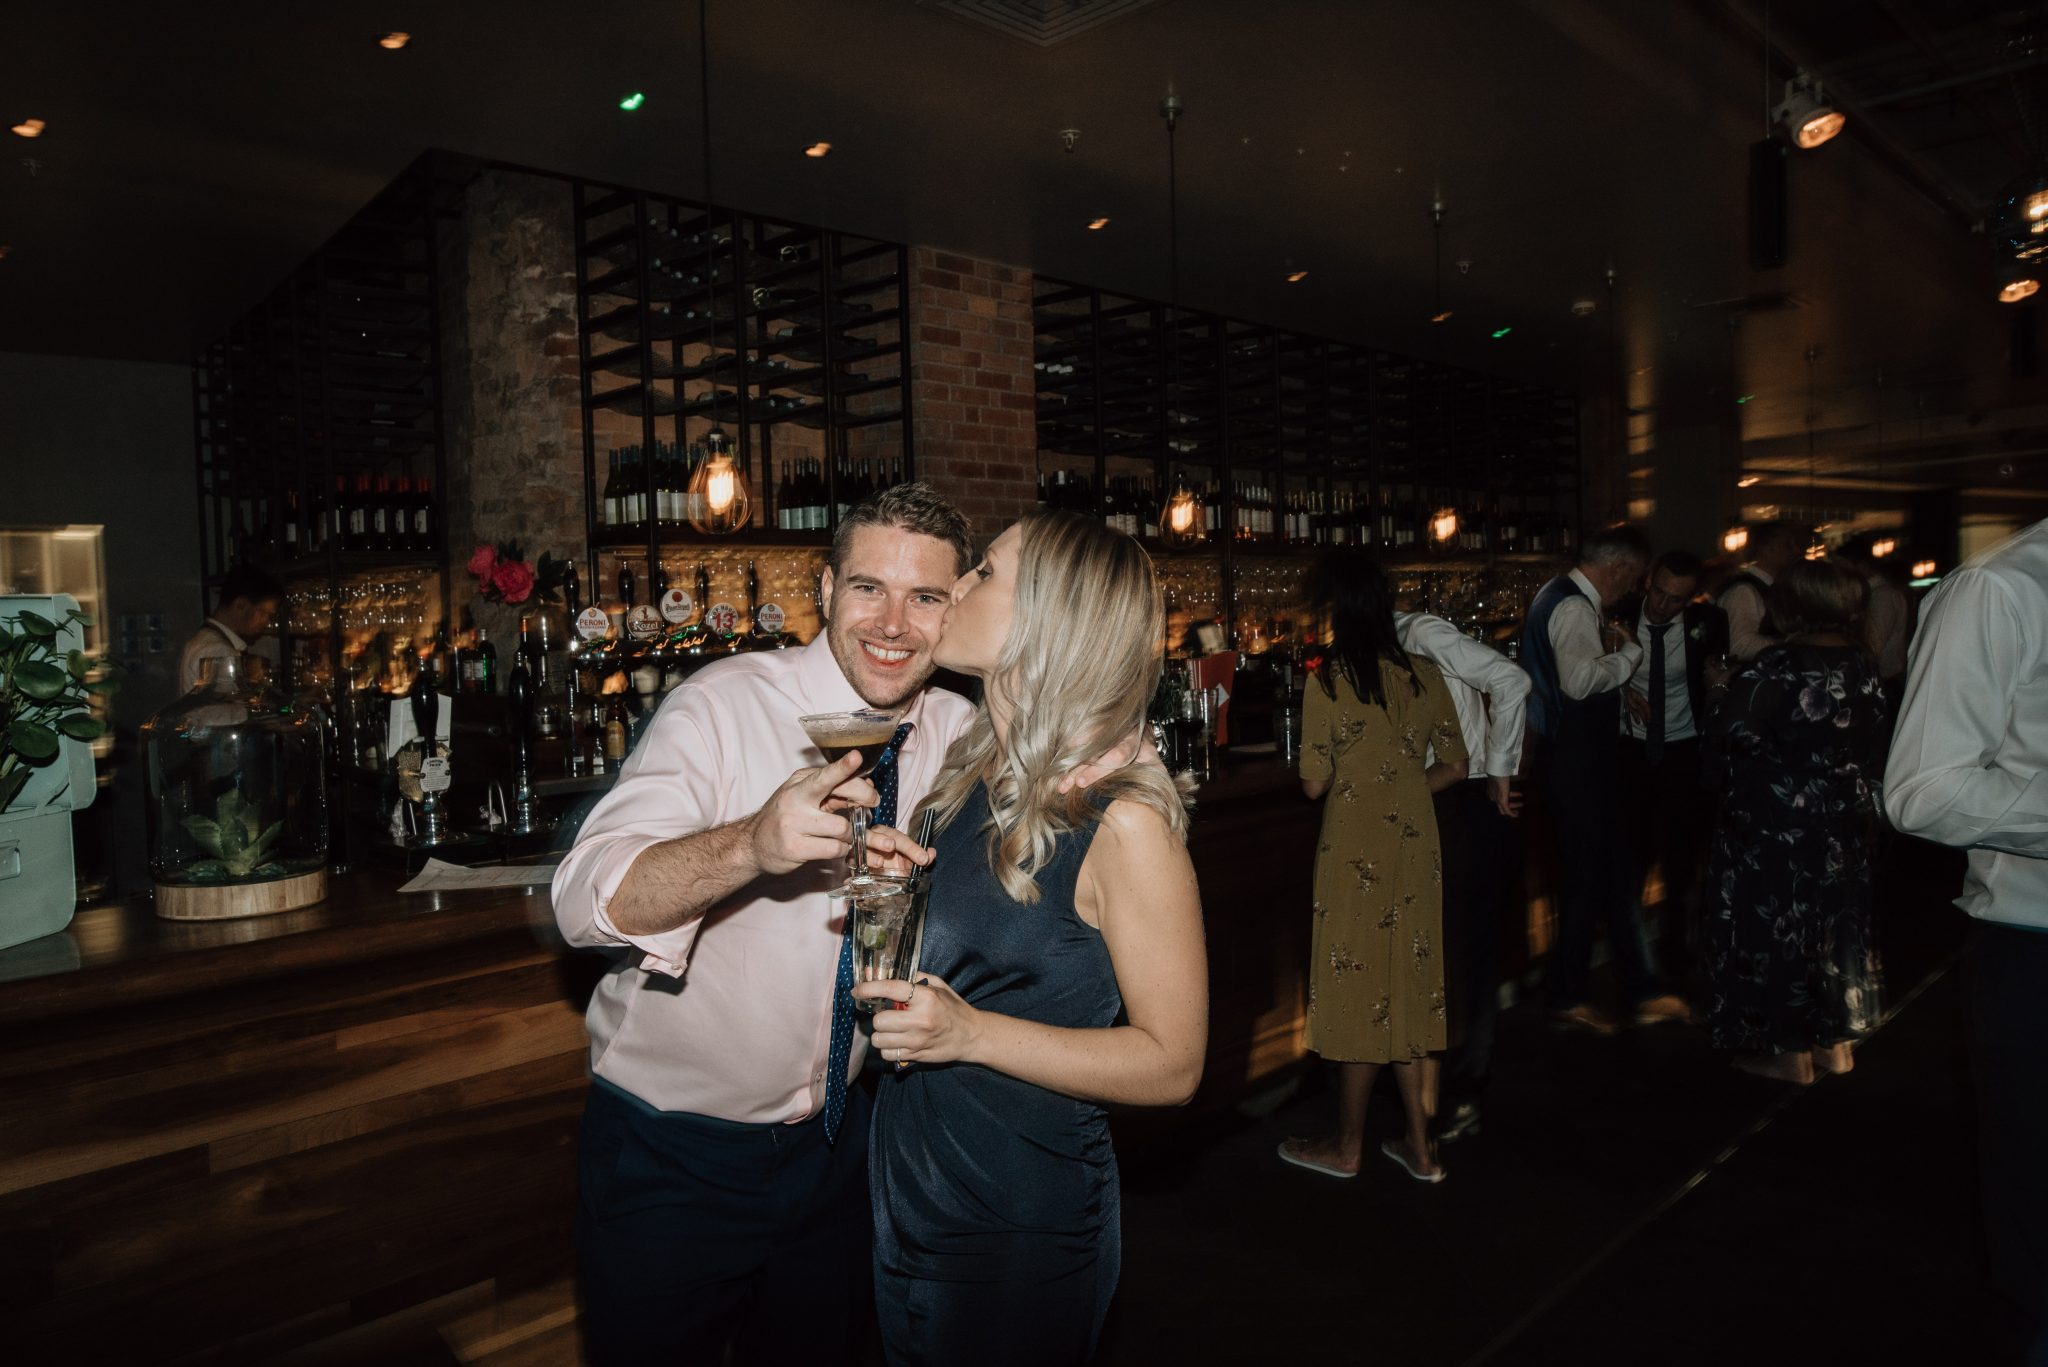 The Anthologist Wedding Photography, The Anthologist Wedding Photography – Joss and Pauls City Wedding